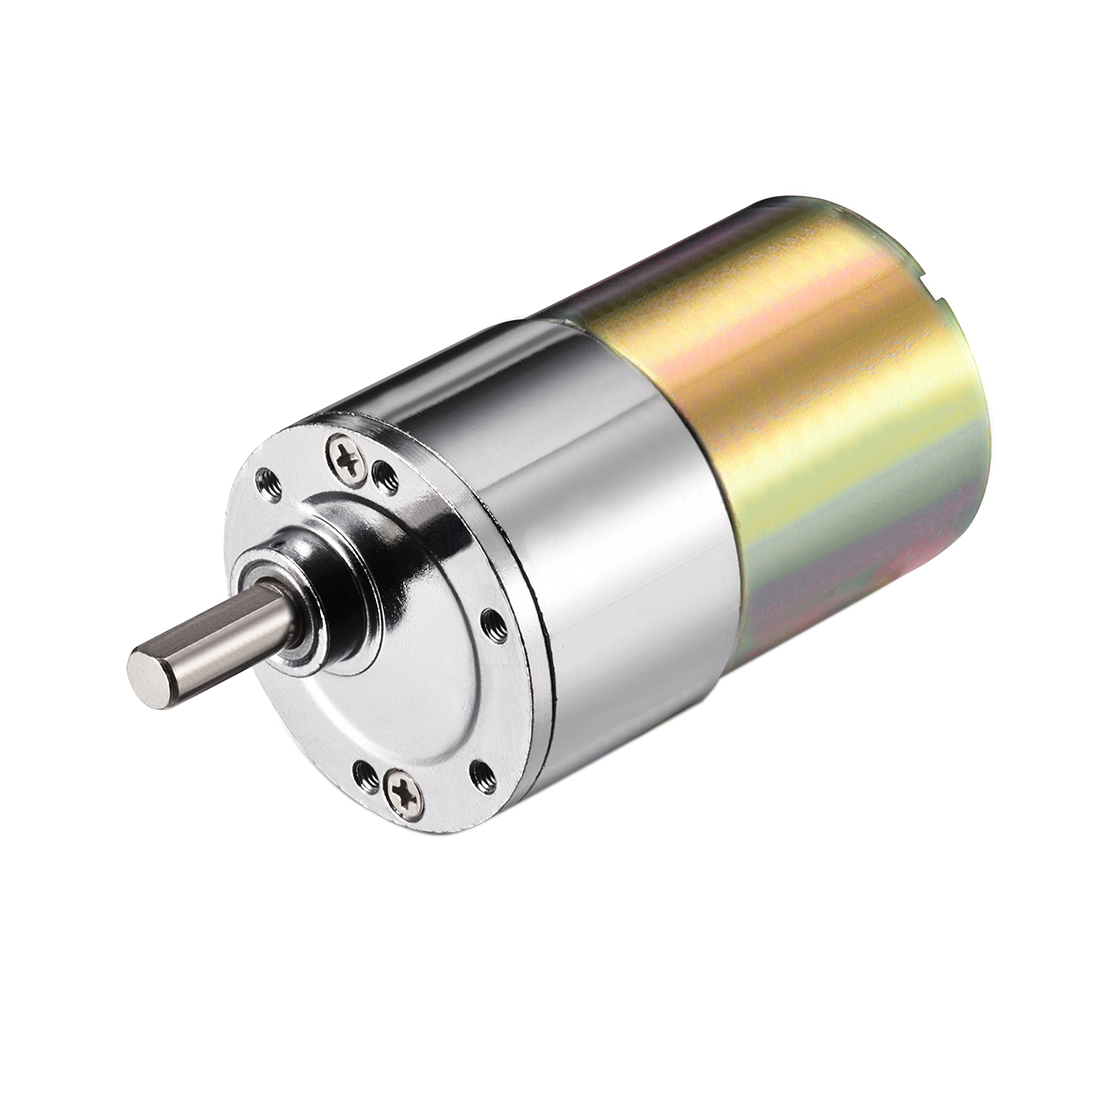 DC 12V 2RPM Micro Gear Box Motor Speed Reduction Electric Gearbox Eccentric Output Shaft